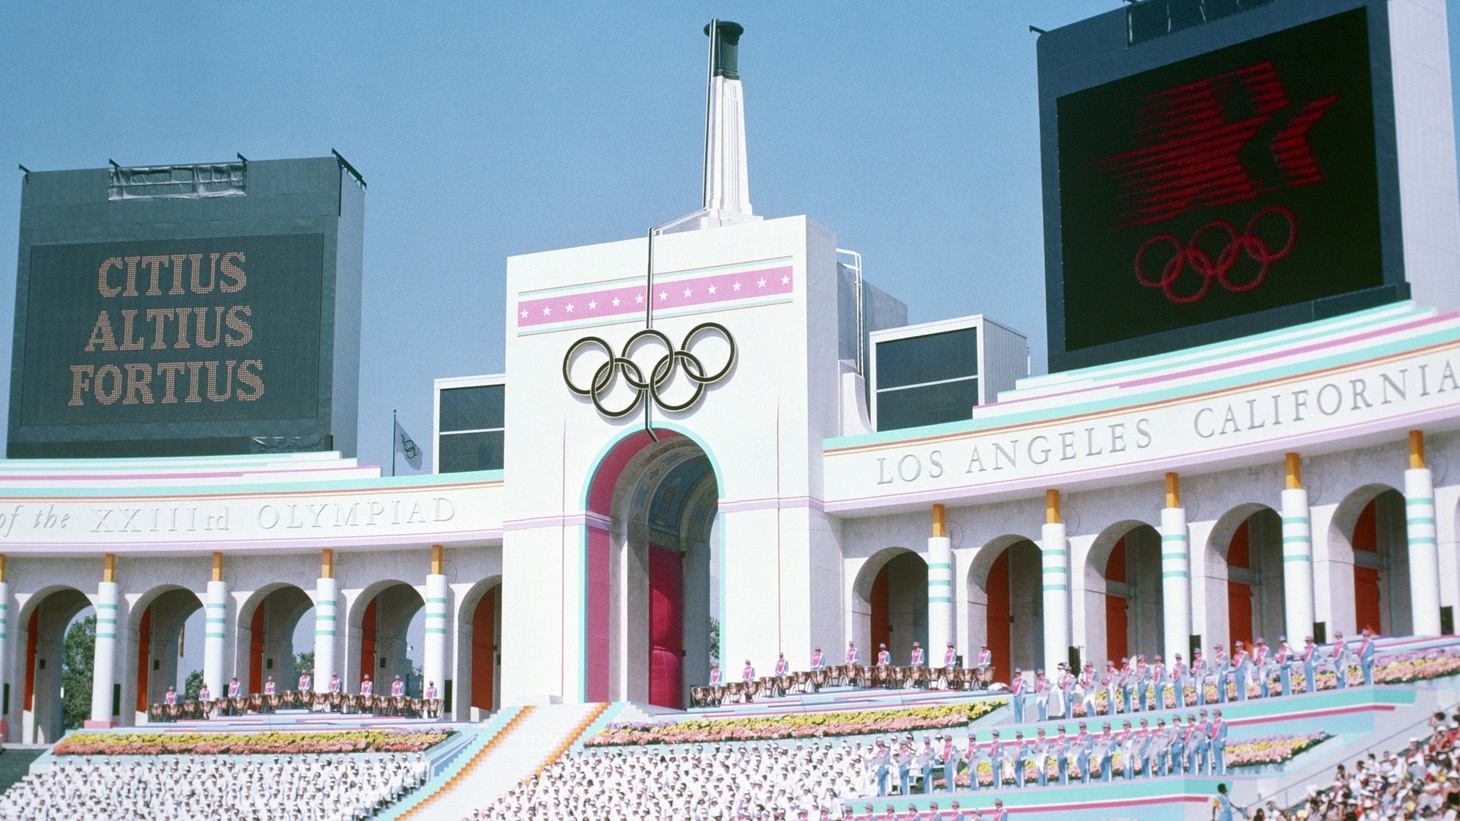 Now that Boston has dropped out, Los Angeles is in the running to host the summer Olympics in 2024. Mayor Garcetti says the city can benefit economically — just like it did in 1984. He's even willing to cover cost overruns, something former Mayor Tom Bradley refused to do. Is it a better bet for taxpayer money than it was 30 years ago?